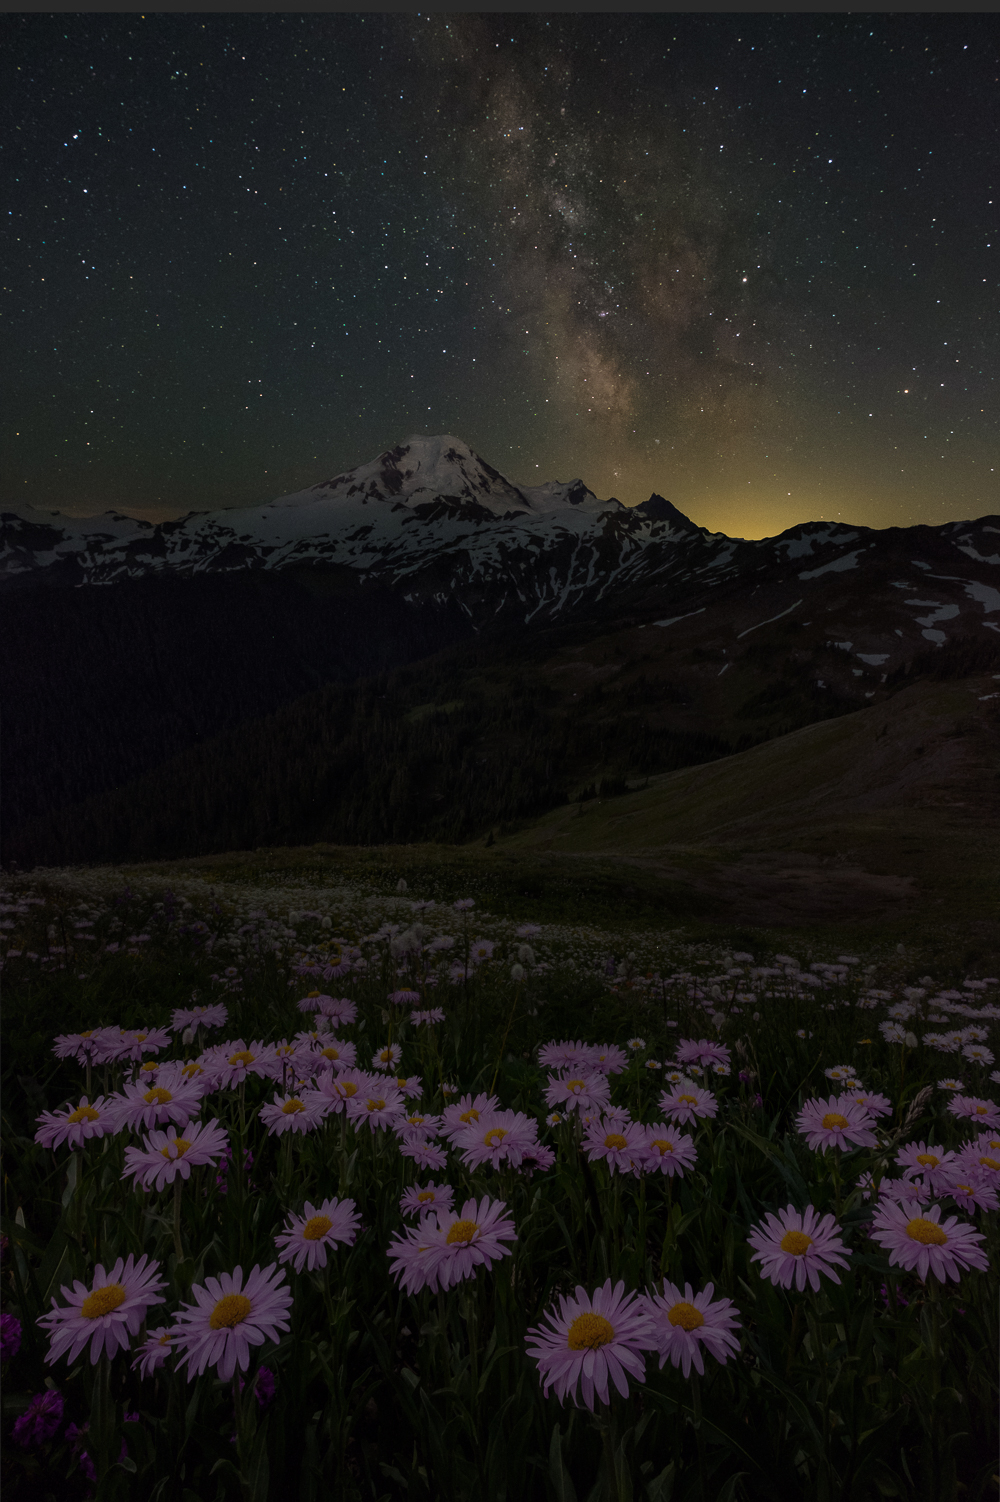 A composite image of asters beneath the summit of Mount Baker and the Milky Way.